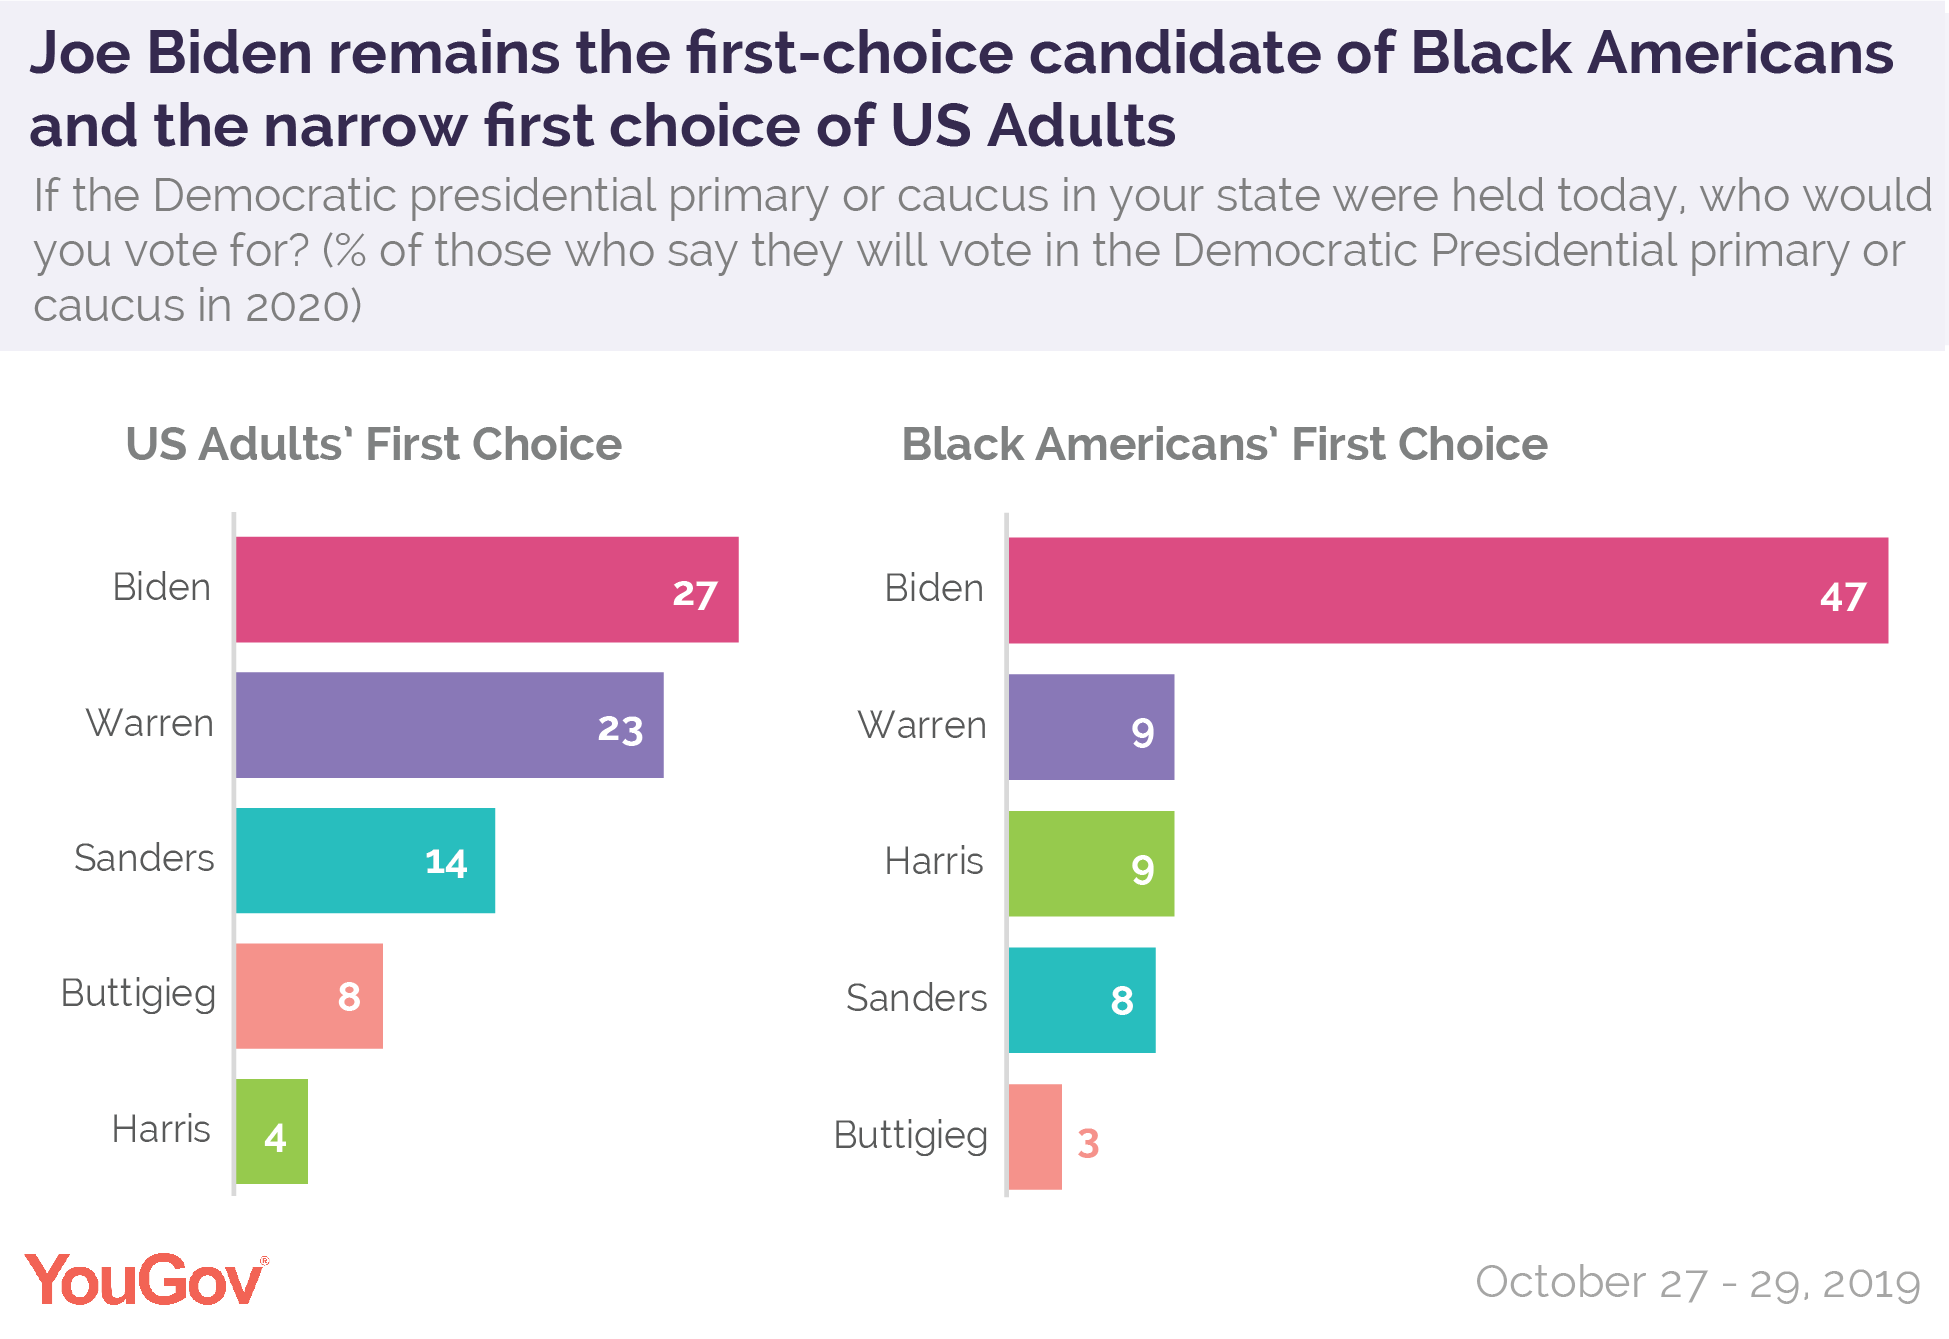 Joe Biden remains the first-choice candidate of Black Americans and the narrow first choice of US Adults